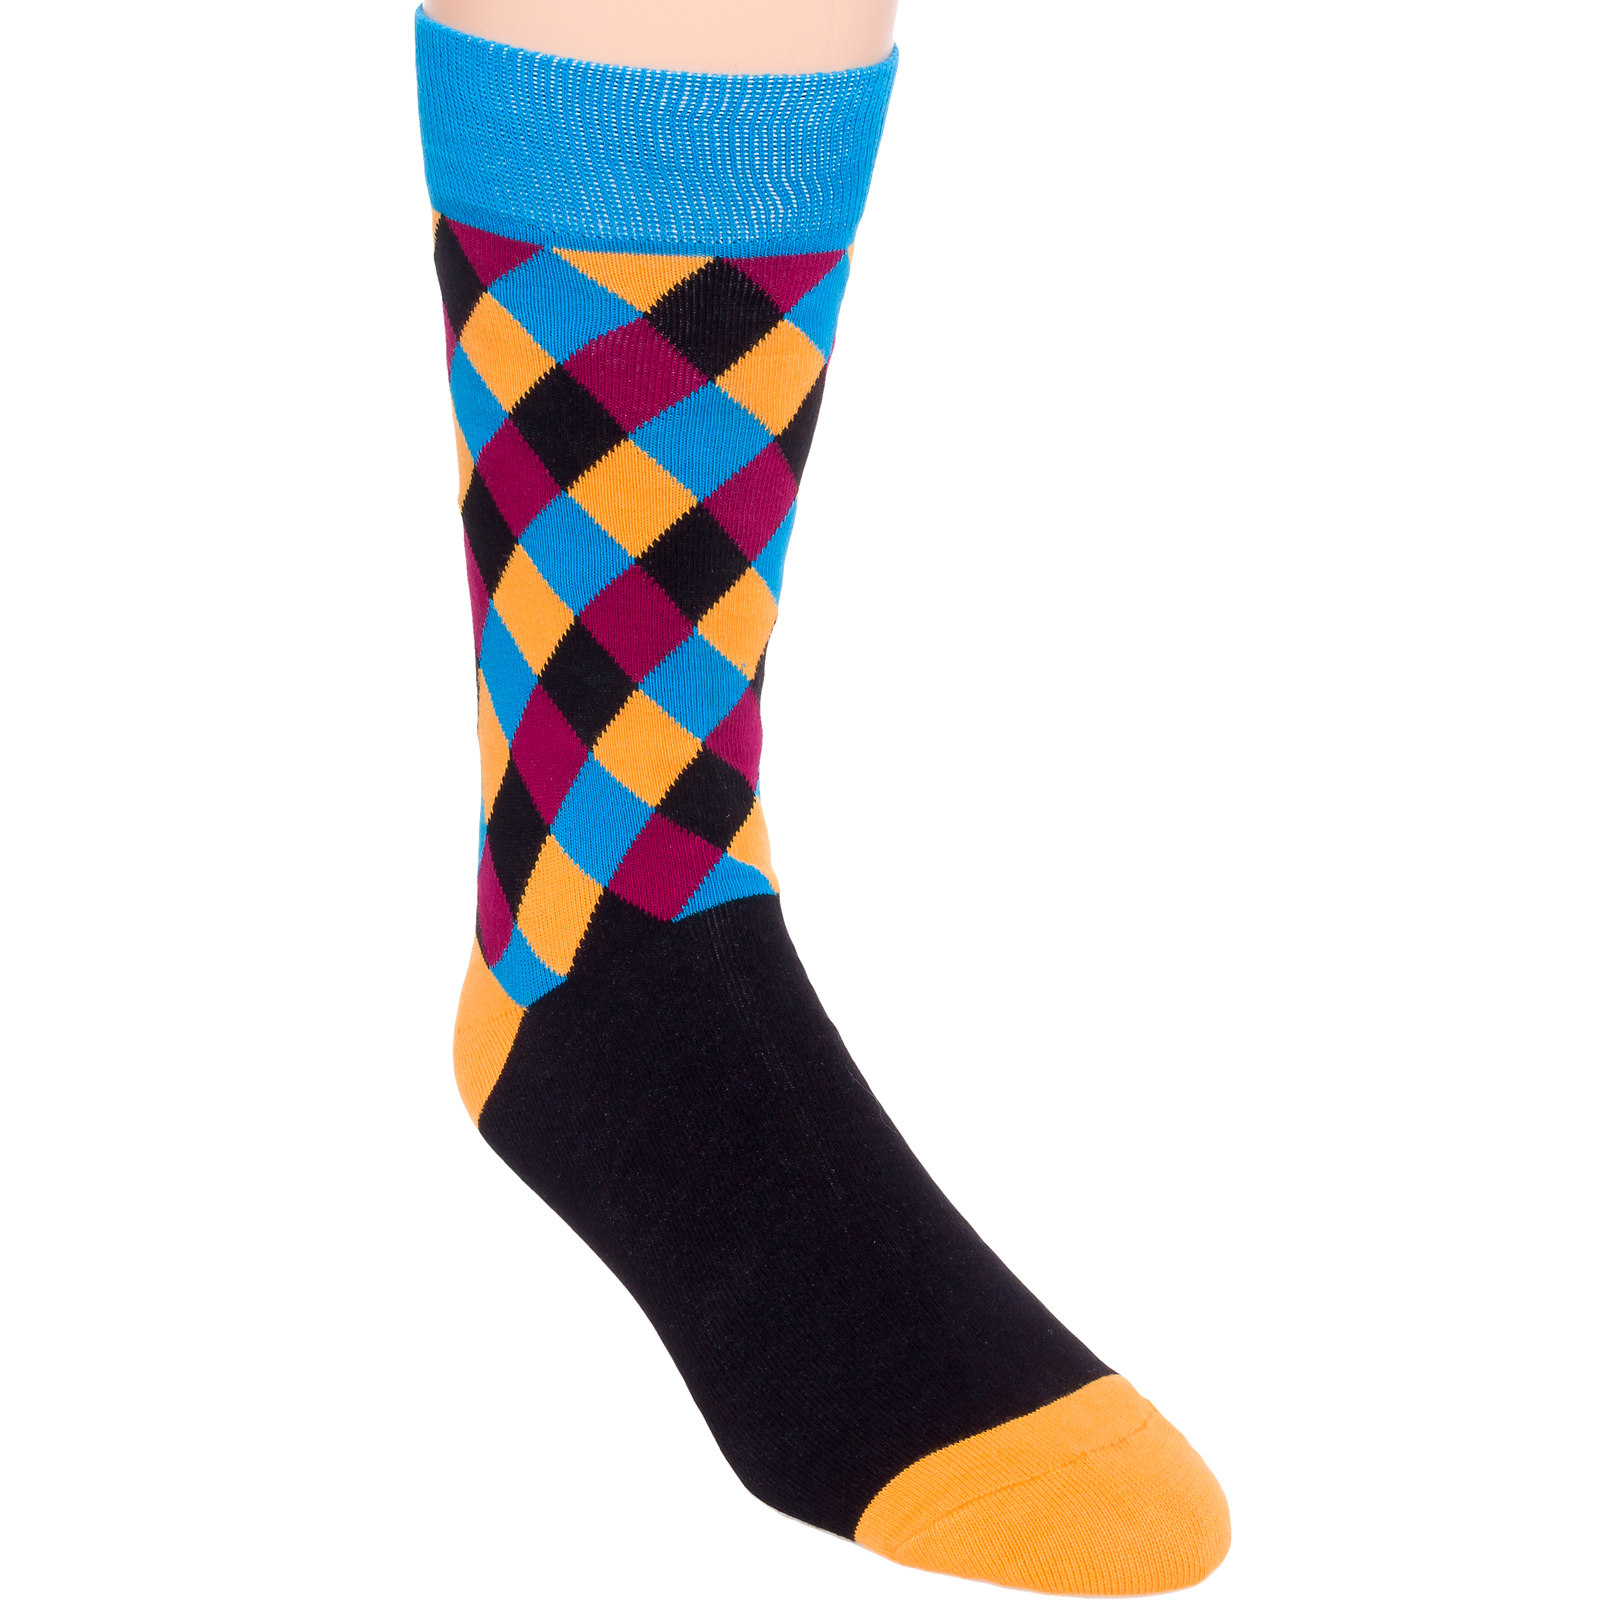 The most colorful men's socks in funky patterns and styles. Shop now for fun multi-colored socks from the top sock brands around the world.